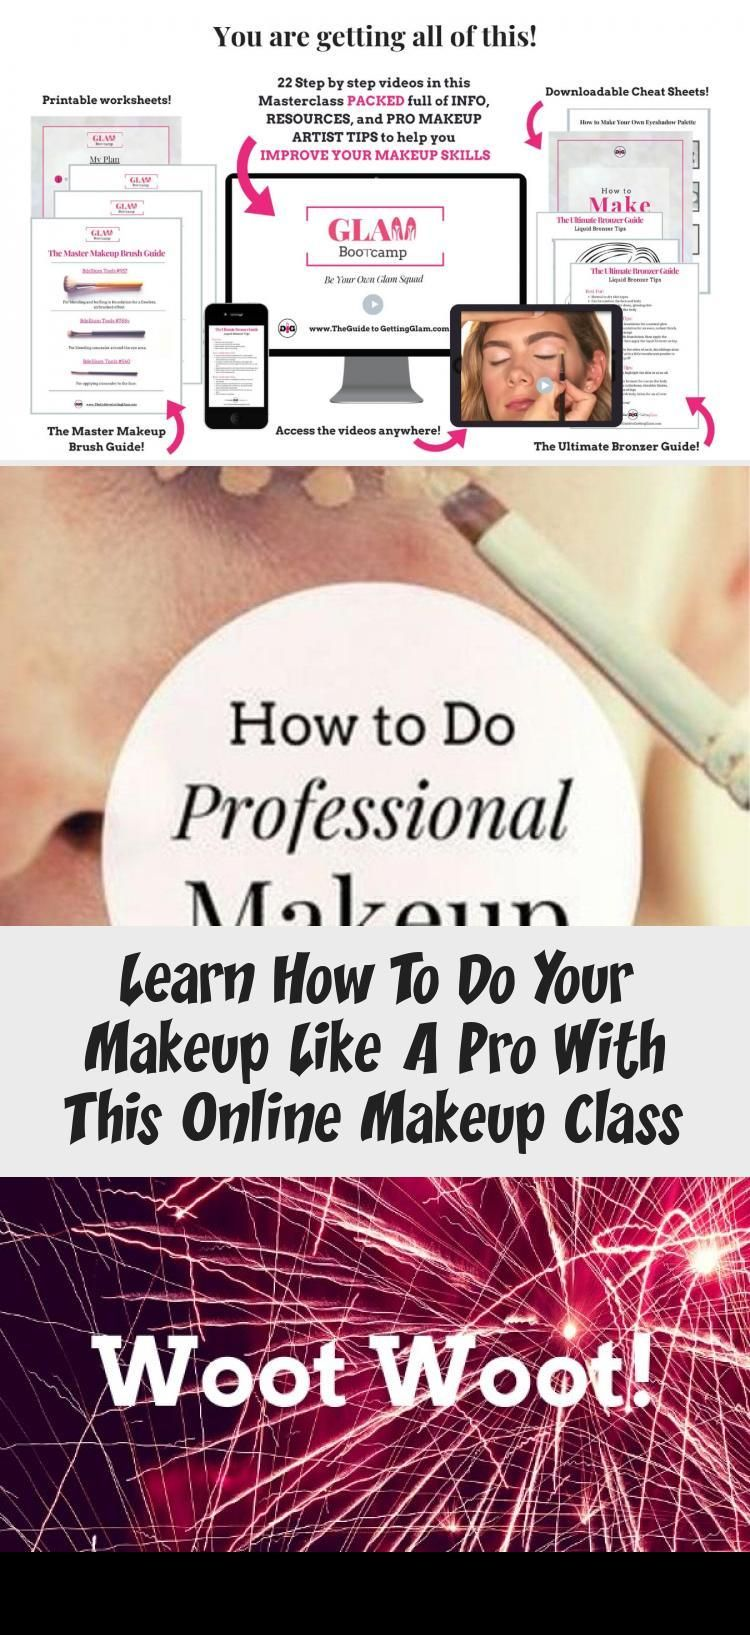 learn how to do your makeup like a pro with this online